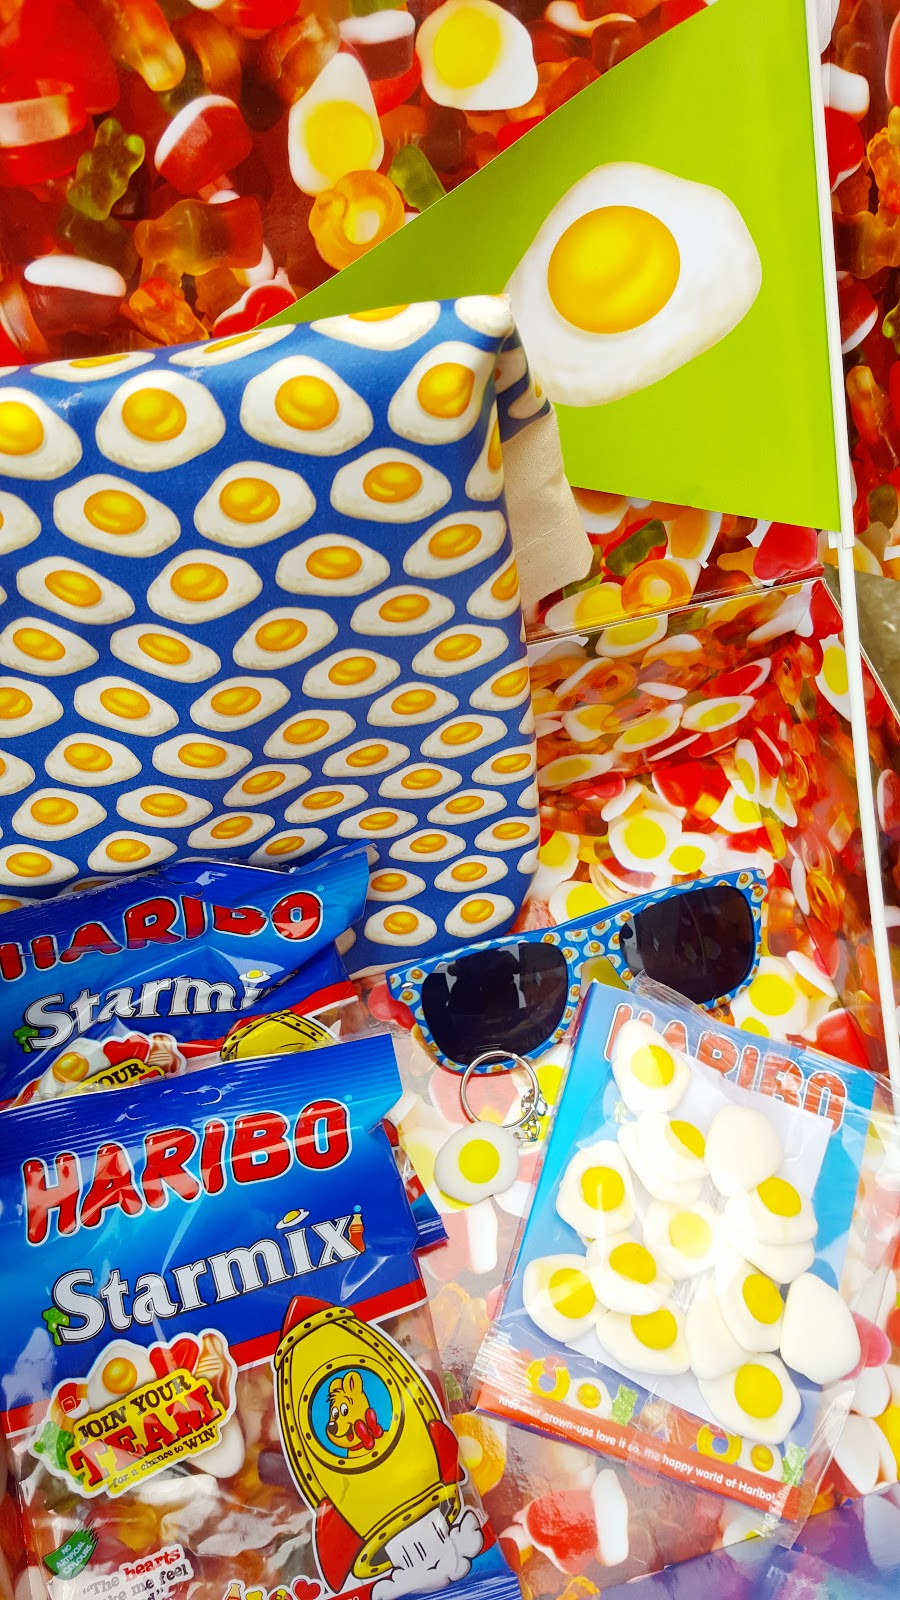 HARIBO Starmix: Join Your Team: Team Egg Here!!